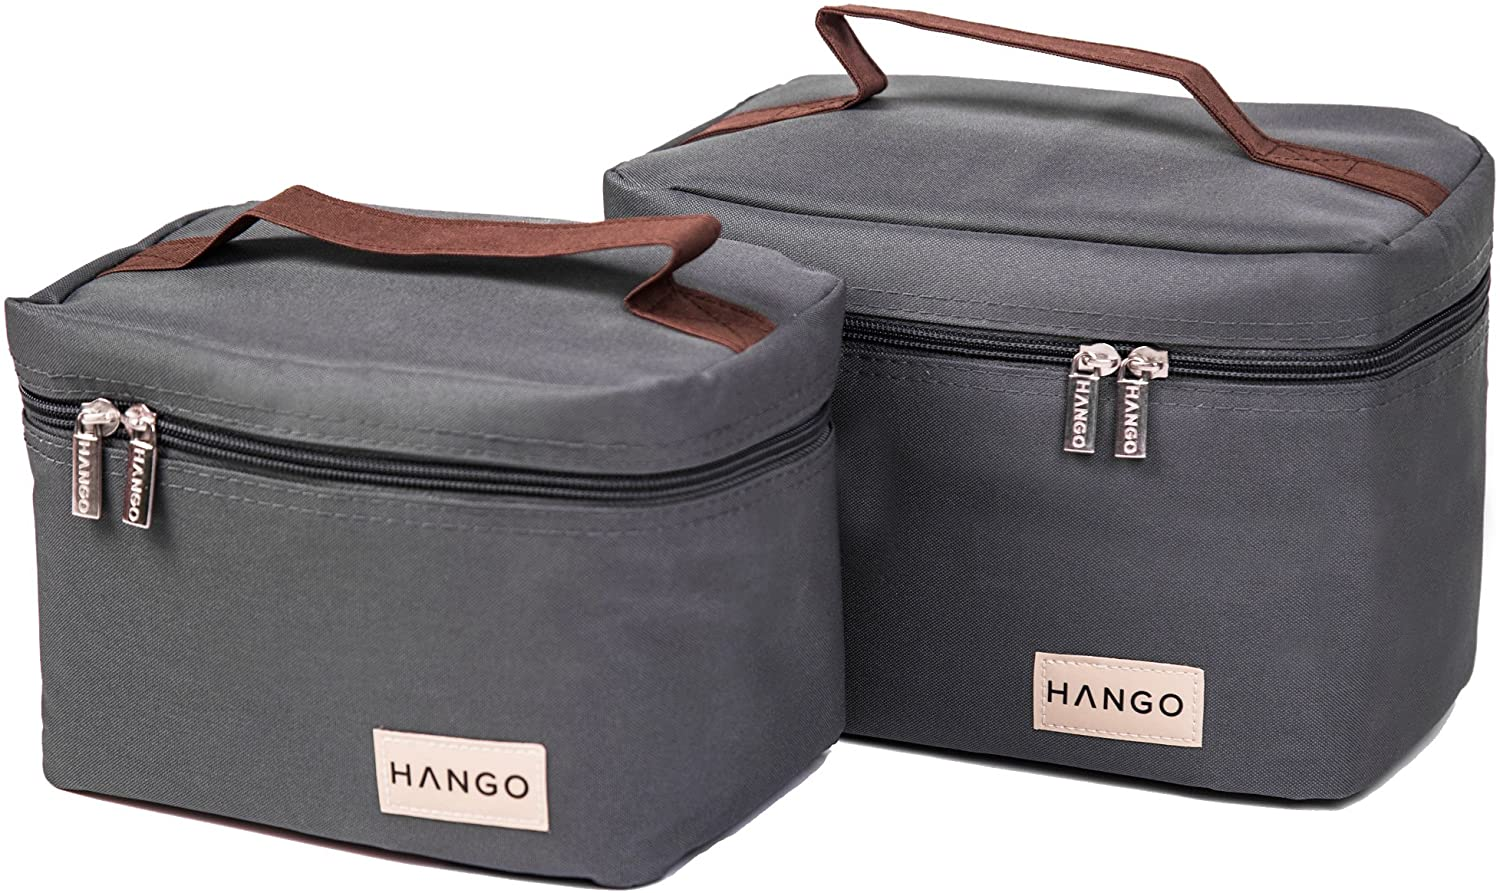 New arrival HANGO Insulated Lunch Bag Set of Max 59% OFF 2 Women For E Men Sizes -